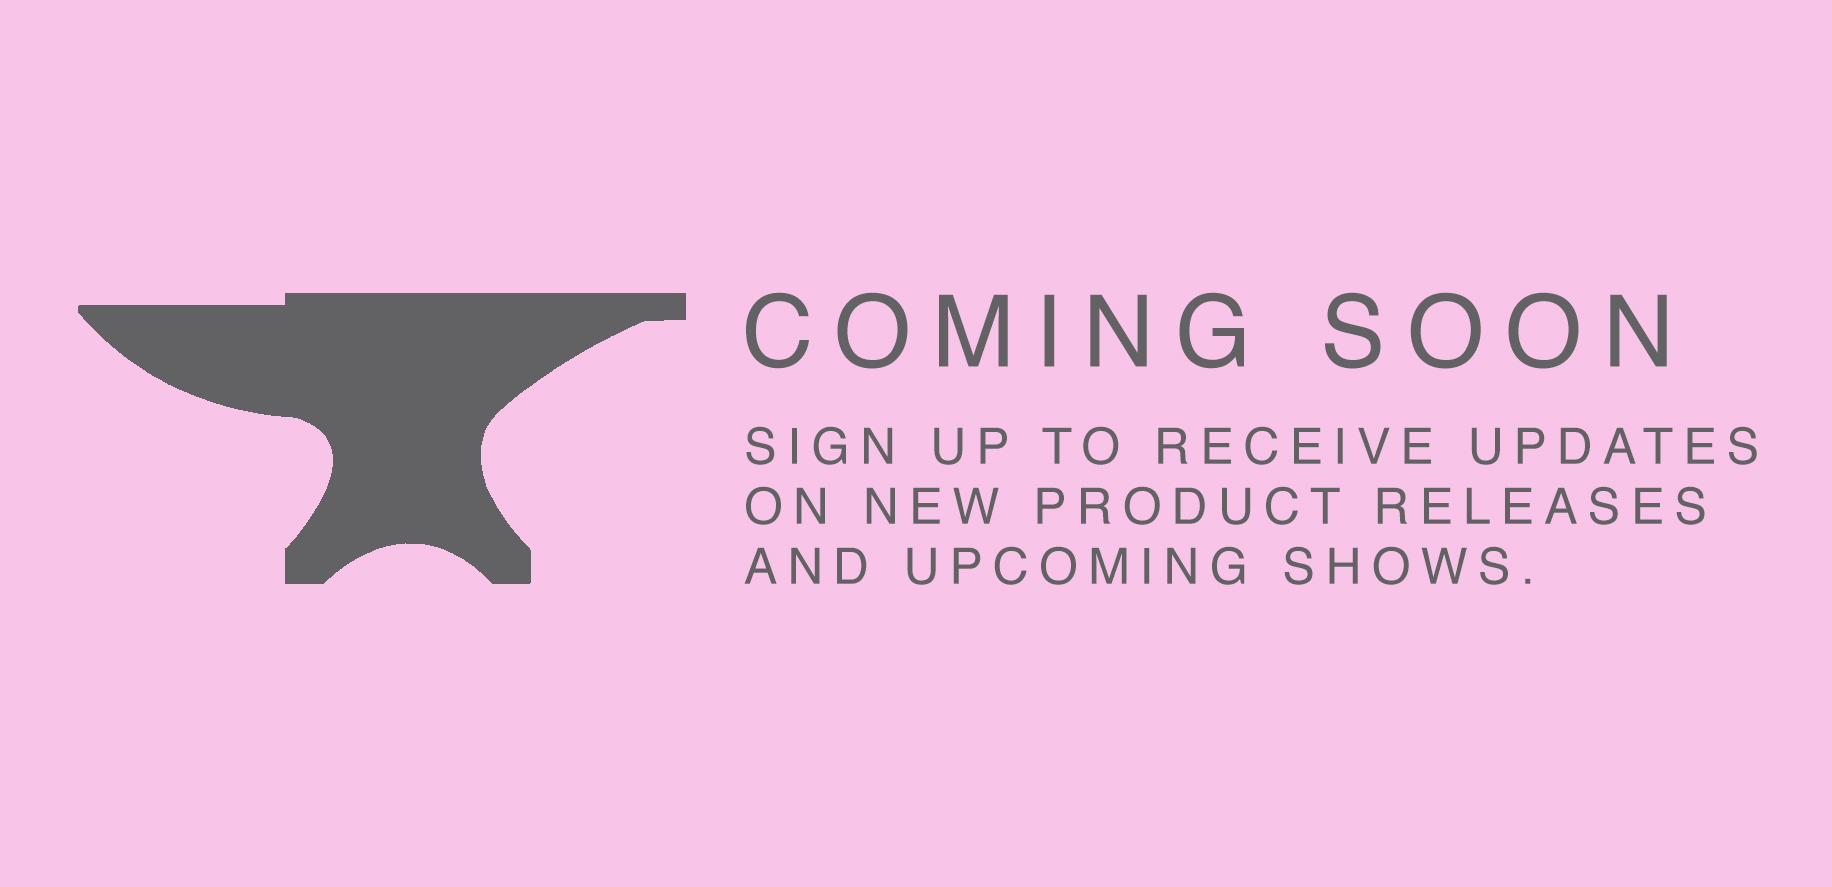 coming soon. sign up to receive updates on new products and upcoming shows